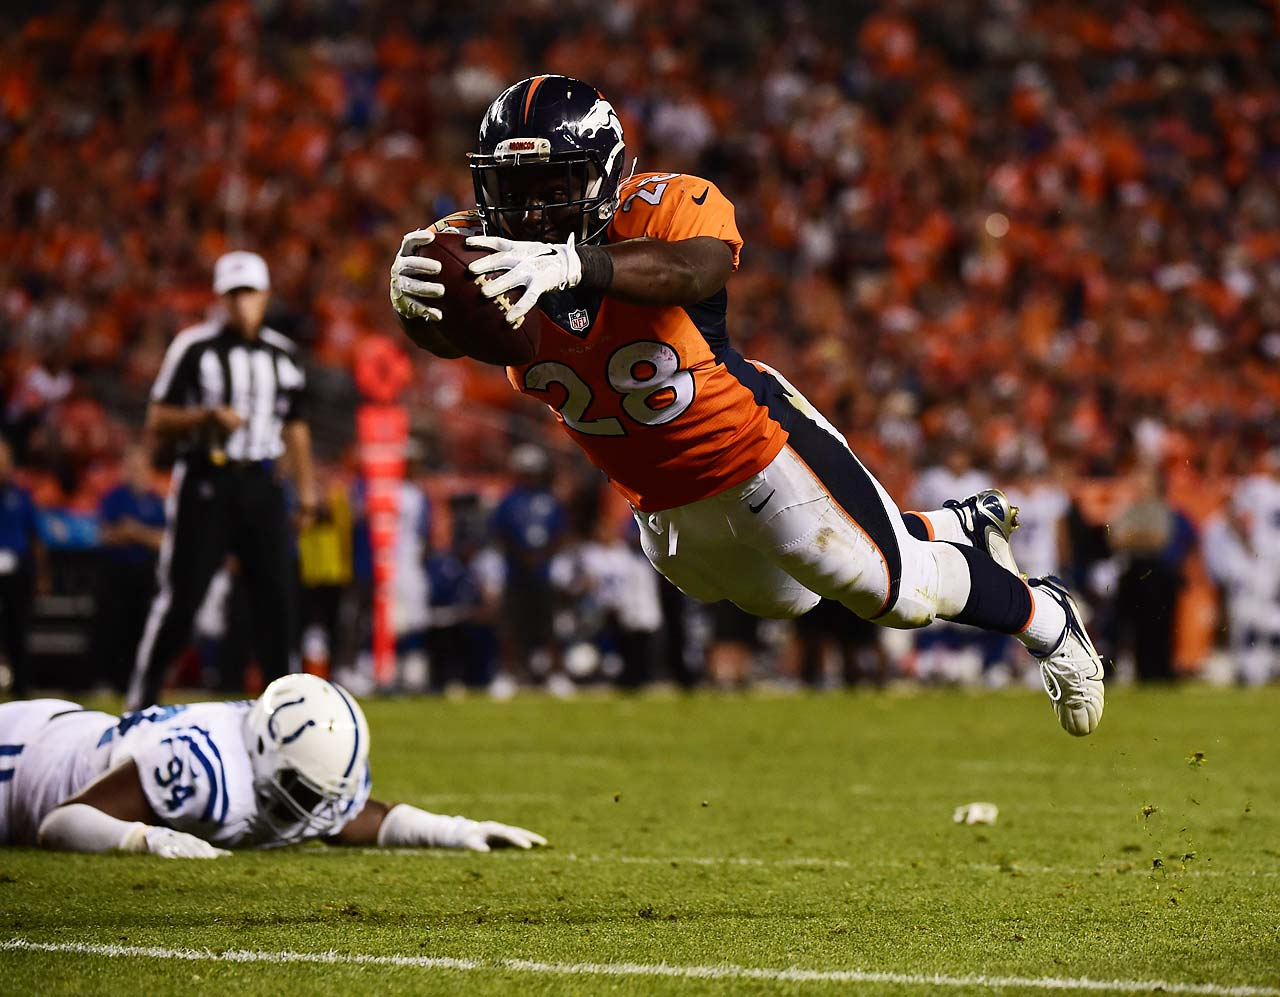 Montee Ball accentuates his scoring run with a dive into the endzone.